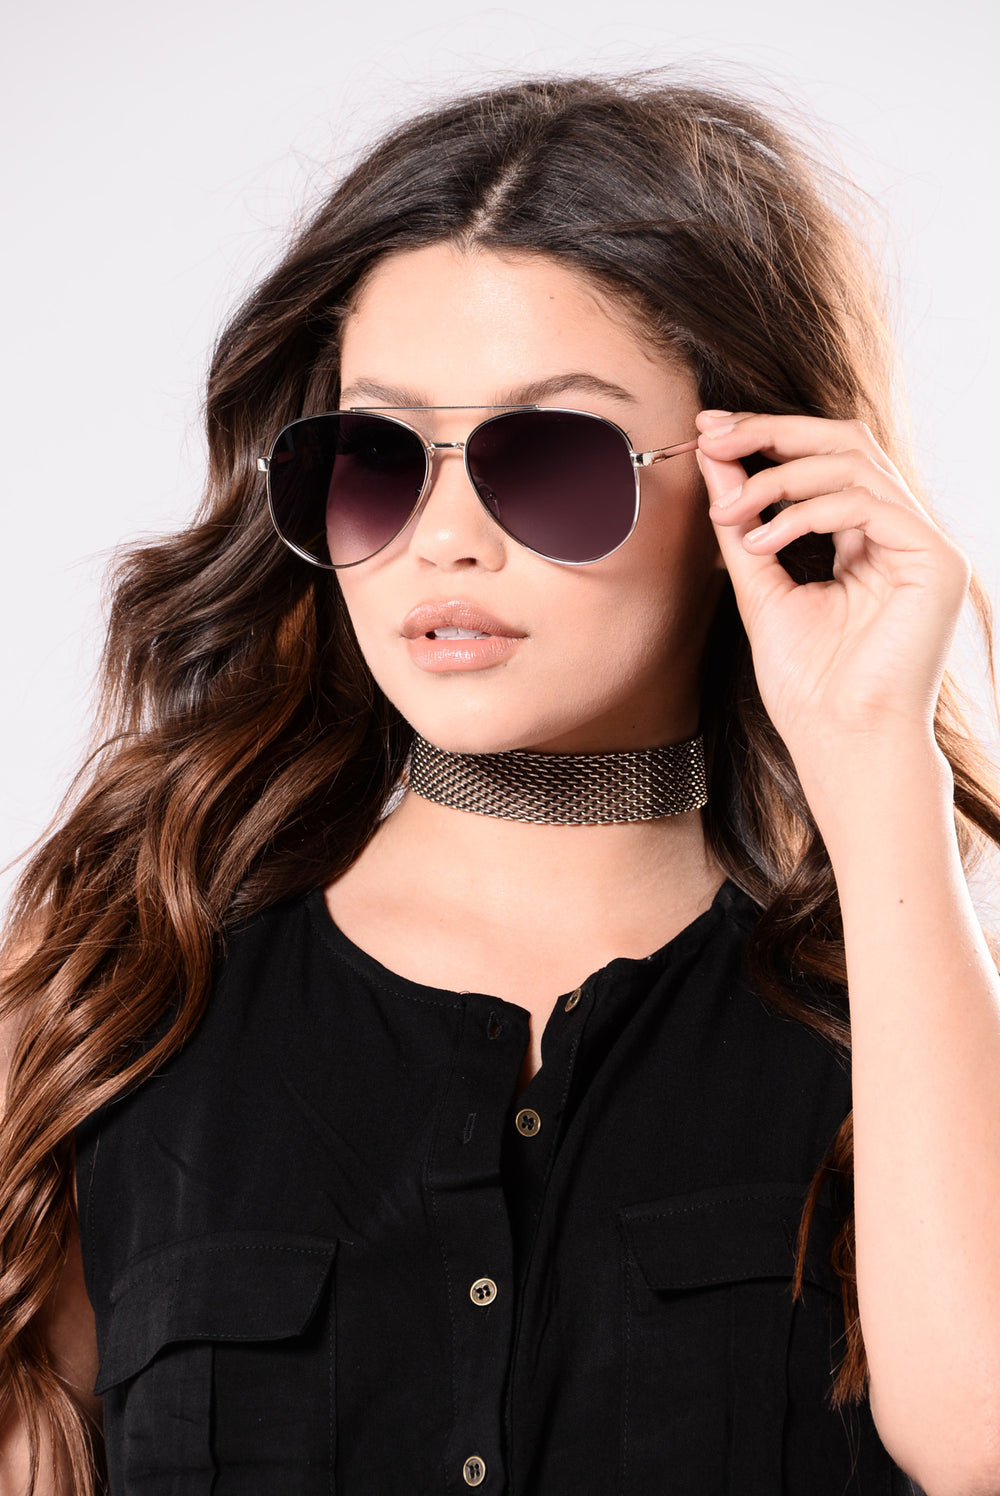 Brandy Sunglasses - Silver